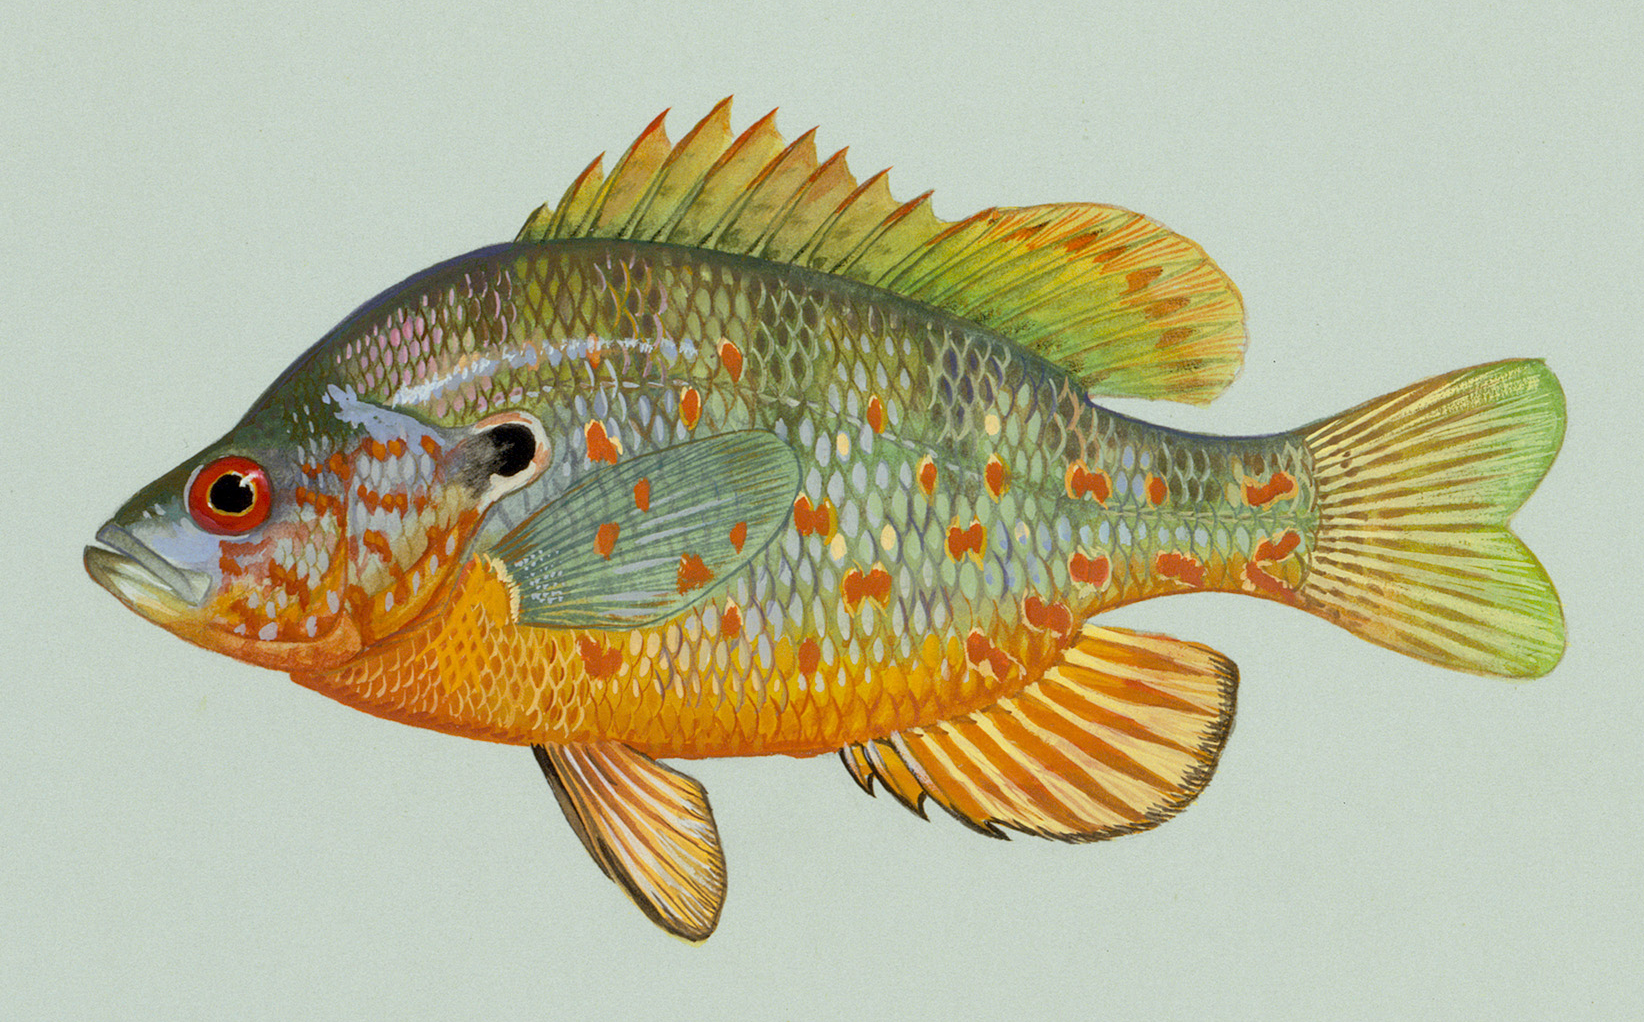 Freshwater sunfish images galleries for Sun perch fish